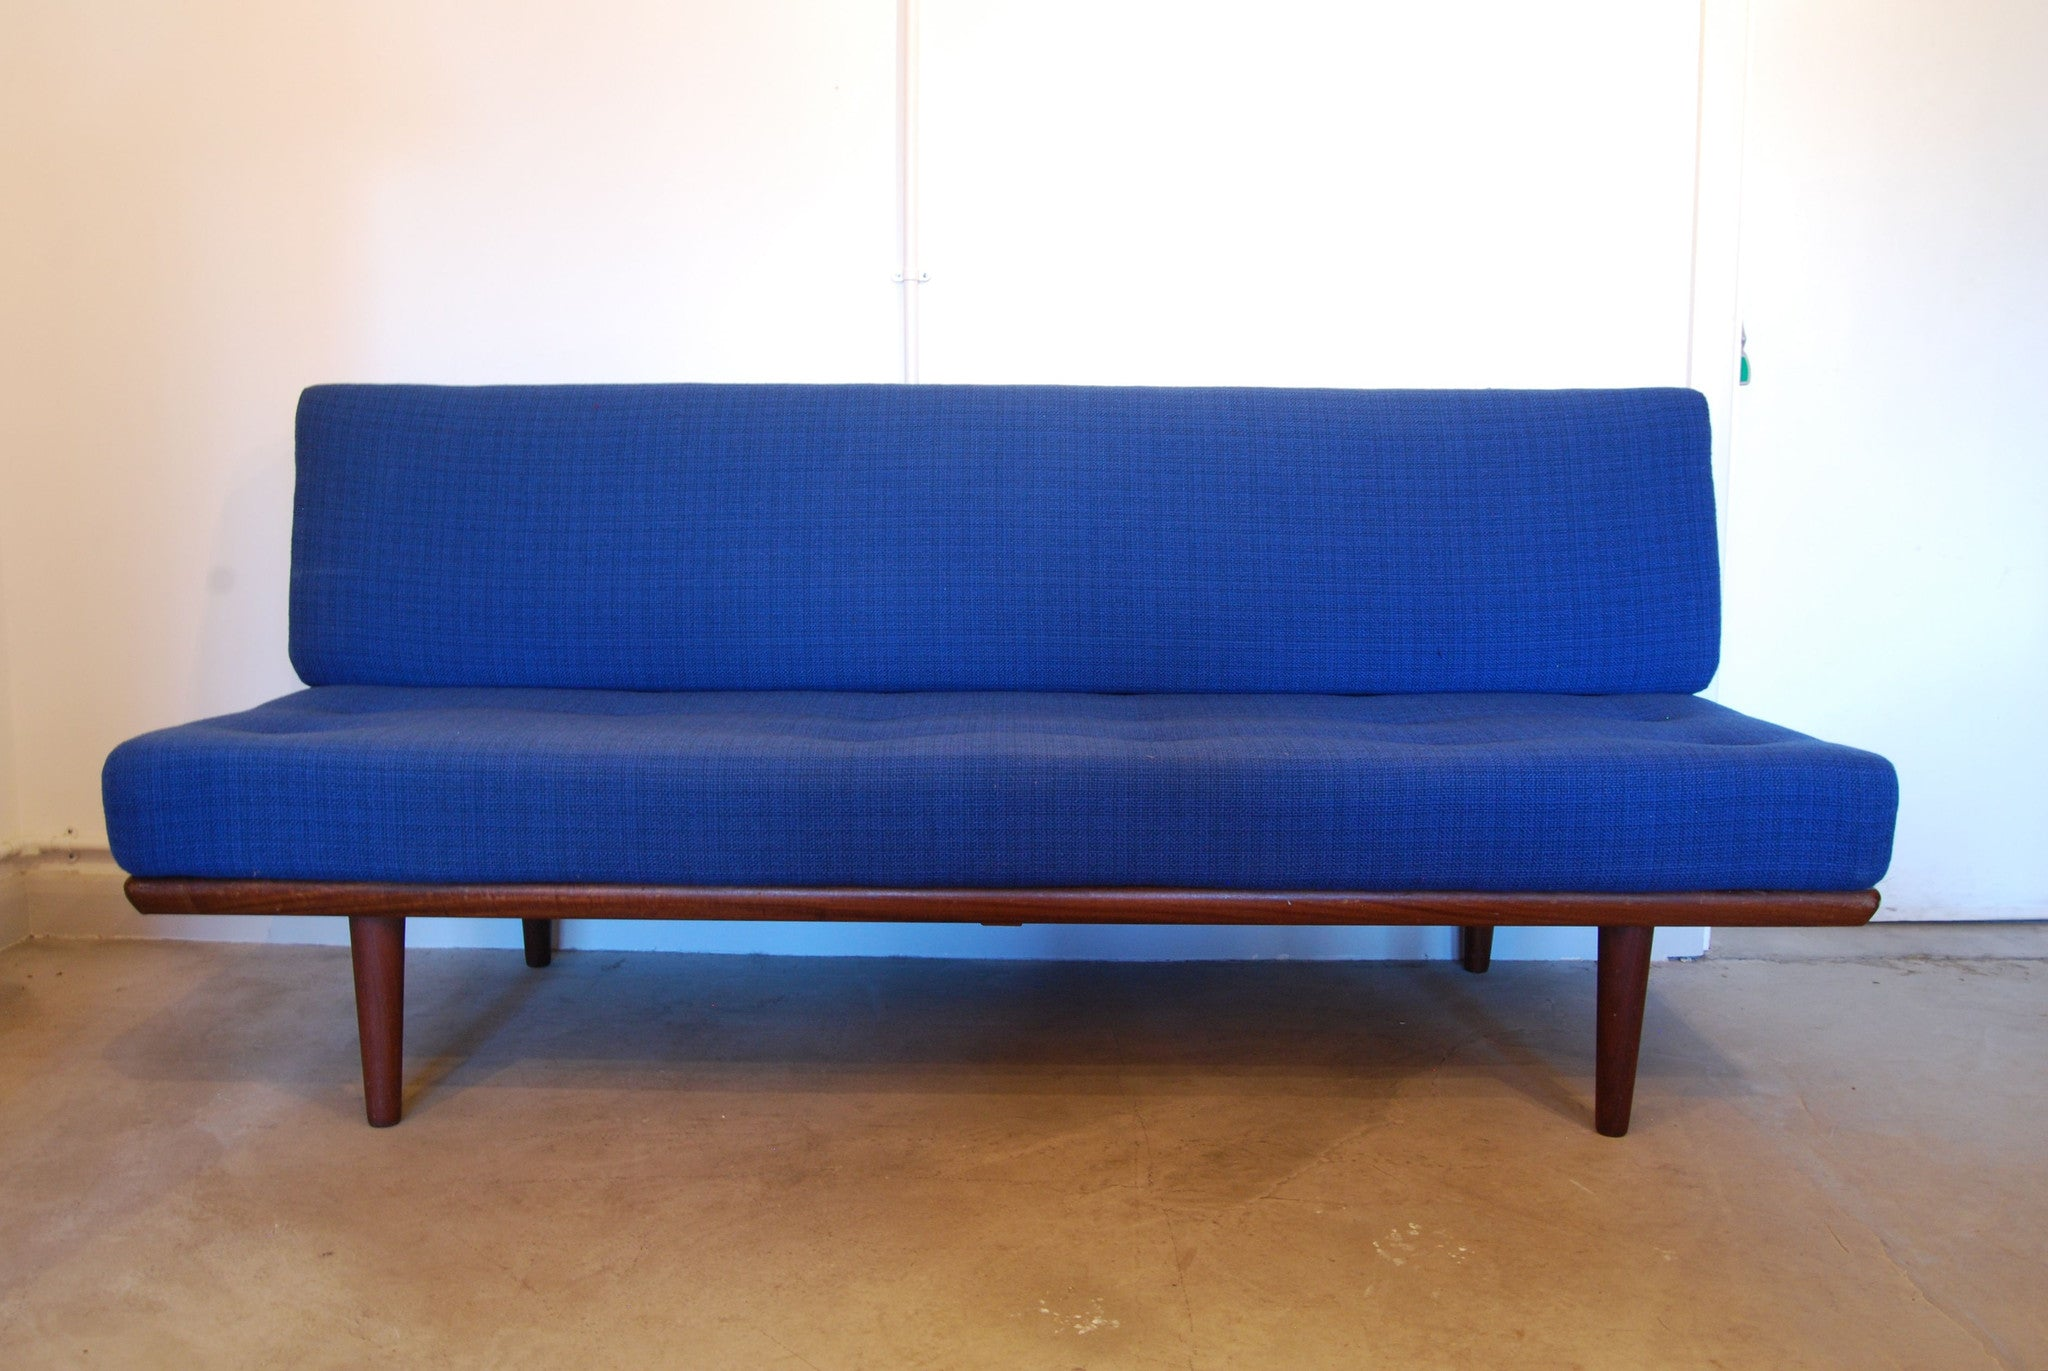 Daybed in royal blue